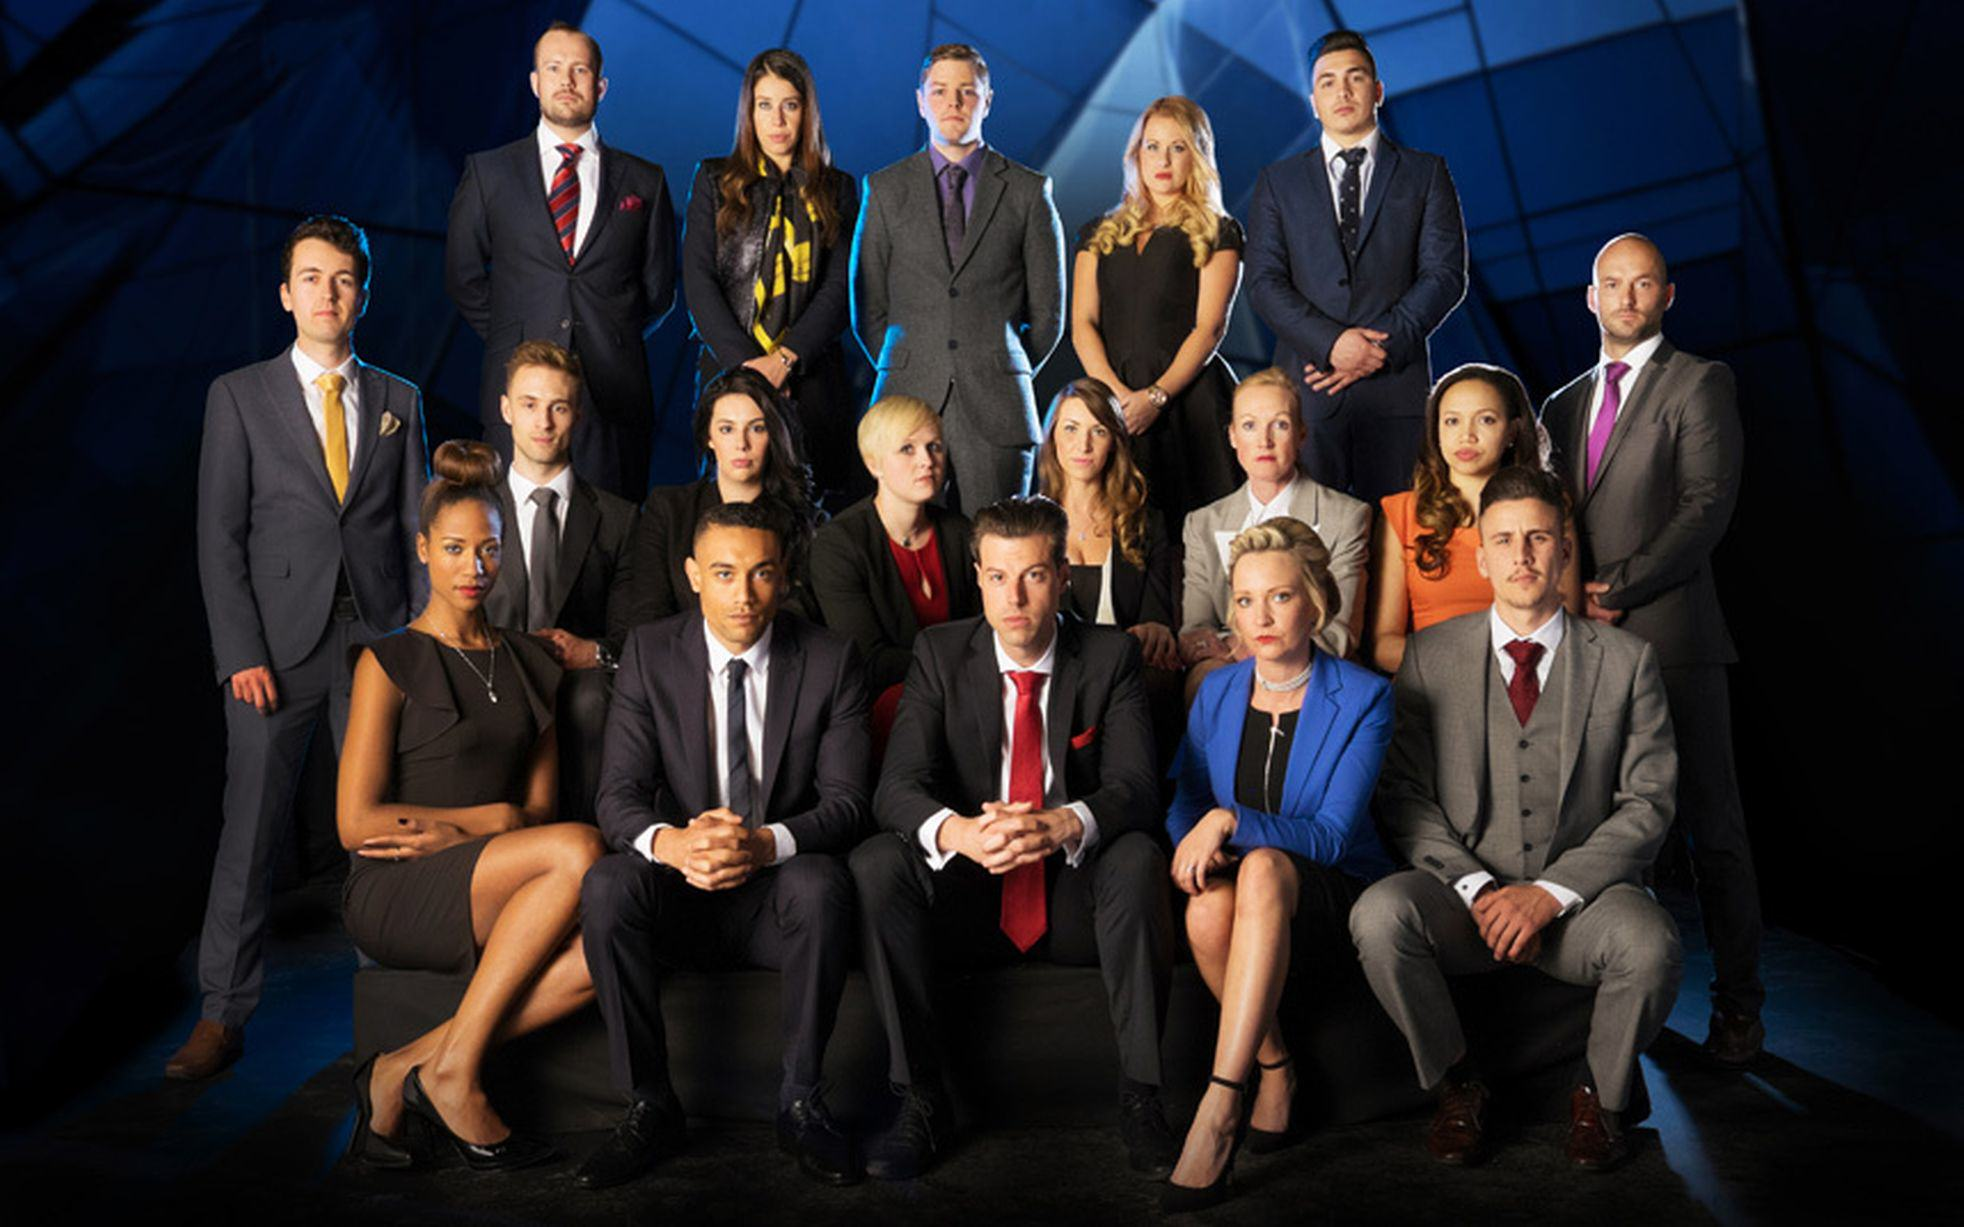 Apprentice Star Describes Himself As F*cking Player And Details Orgy With Female Contestant apprentice group 3459892k